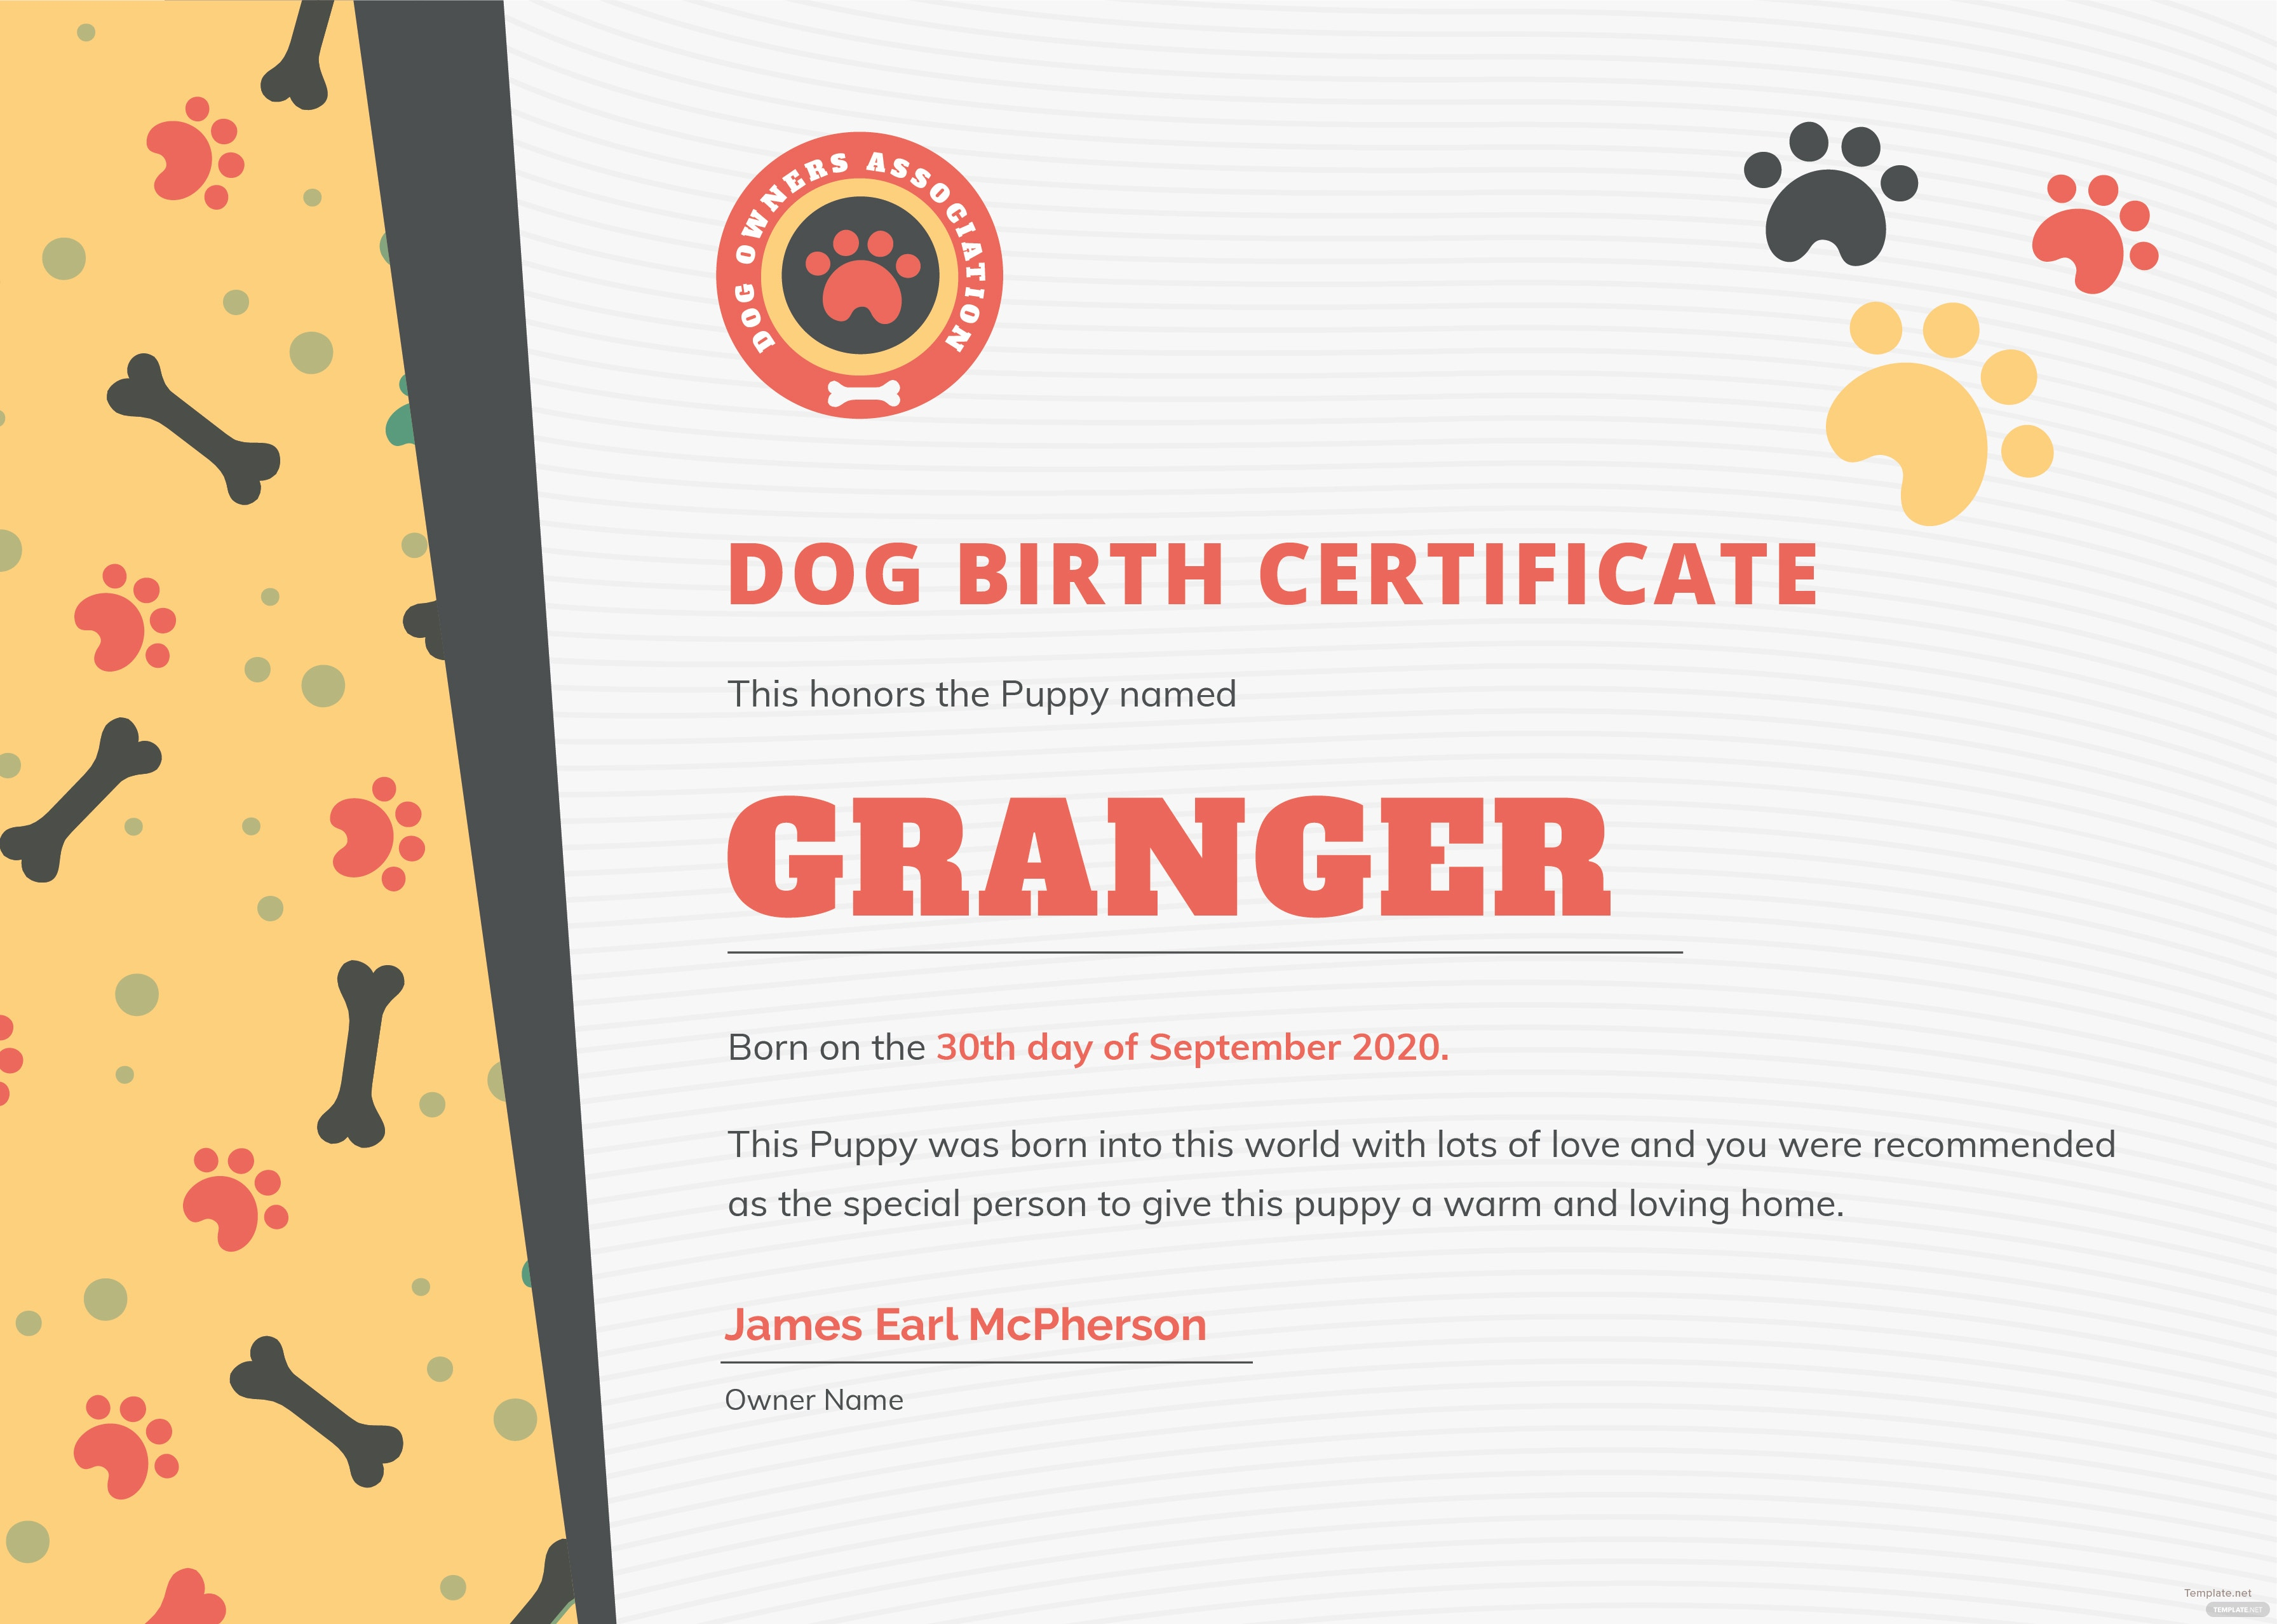 Free Dog Birth Certificate Template in Adobe Photoshop, Illustrator ...